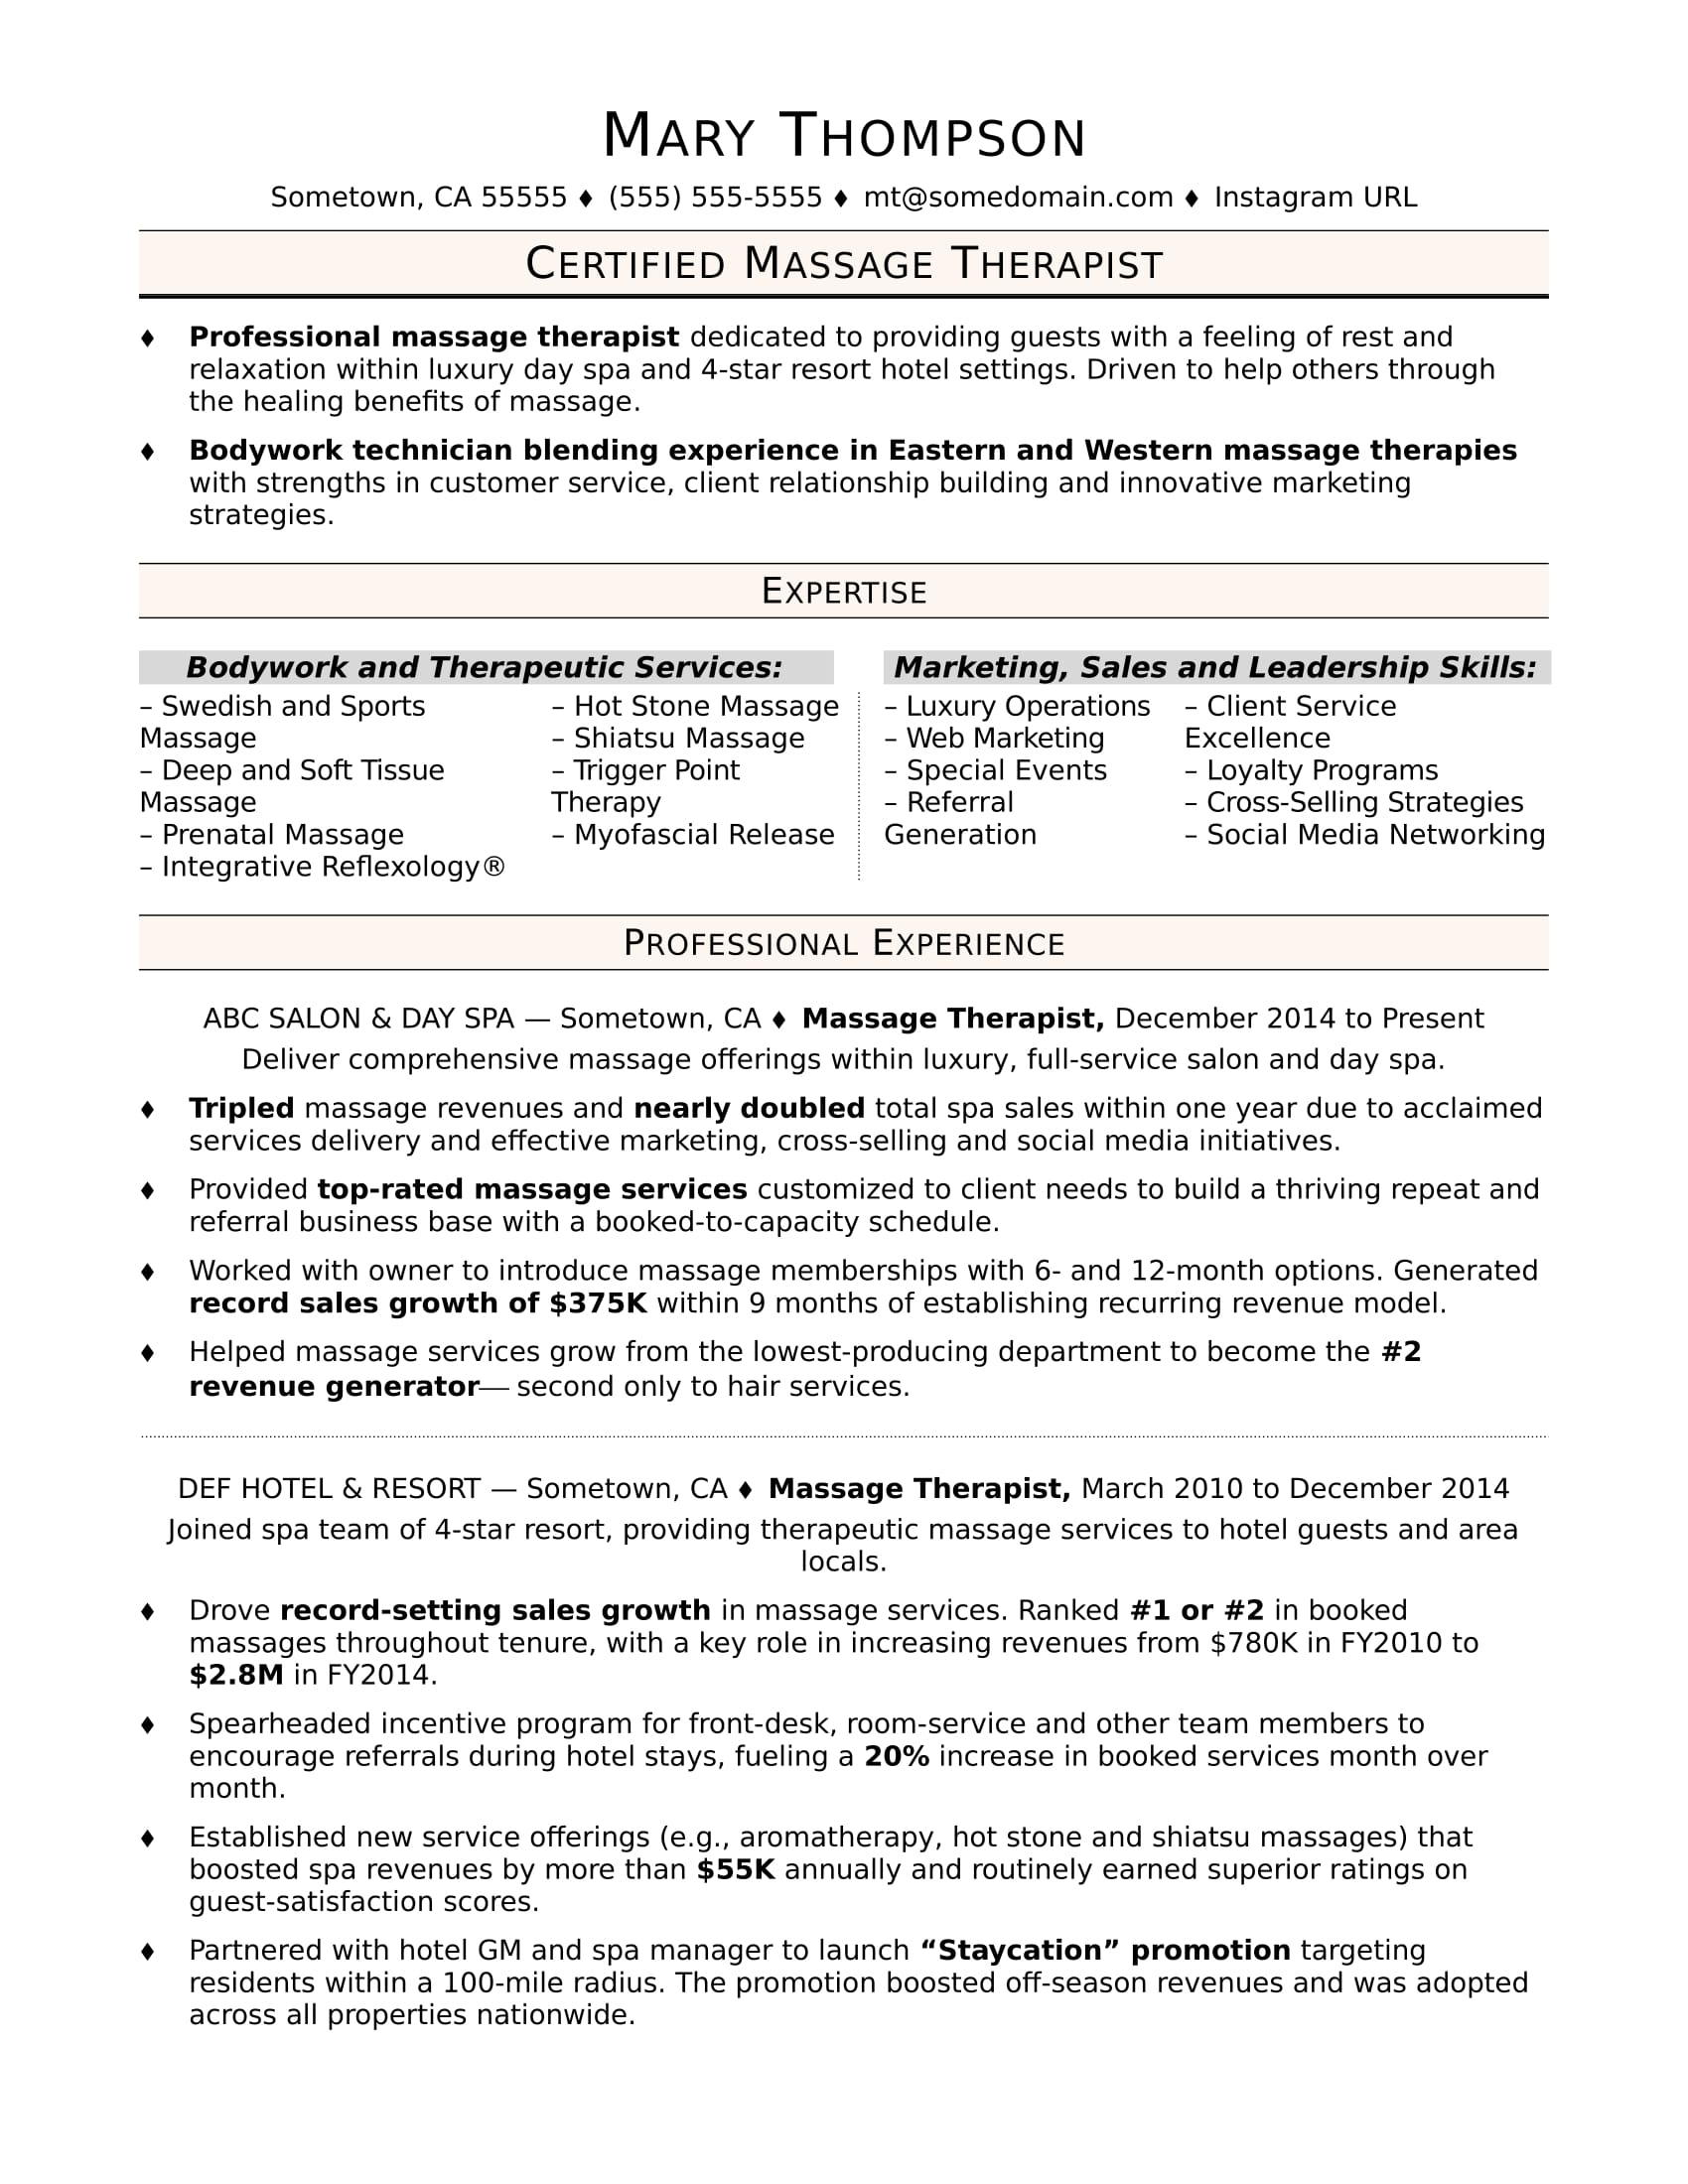 massage therapist resume sample - Massage Therapist Resume Sample